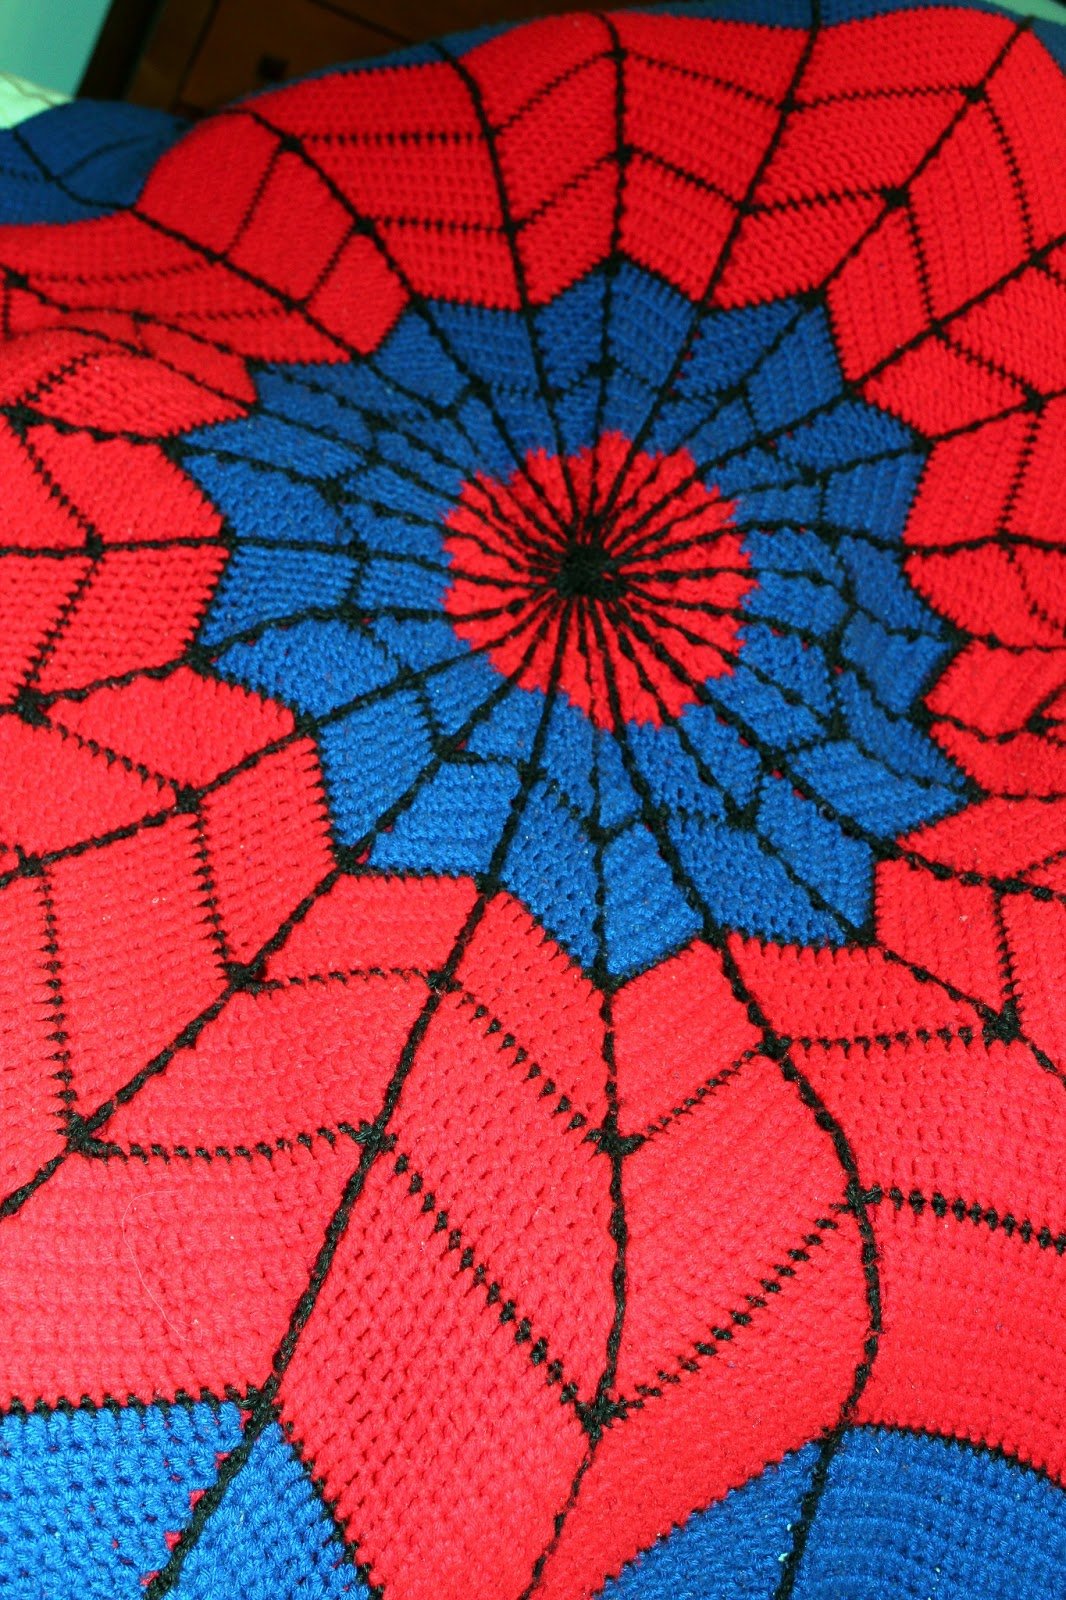 ... Dreamcatcher Afghan or the original blog post here: Stitchnfrog Blog